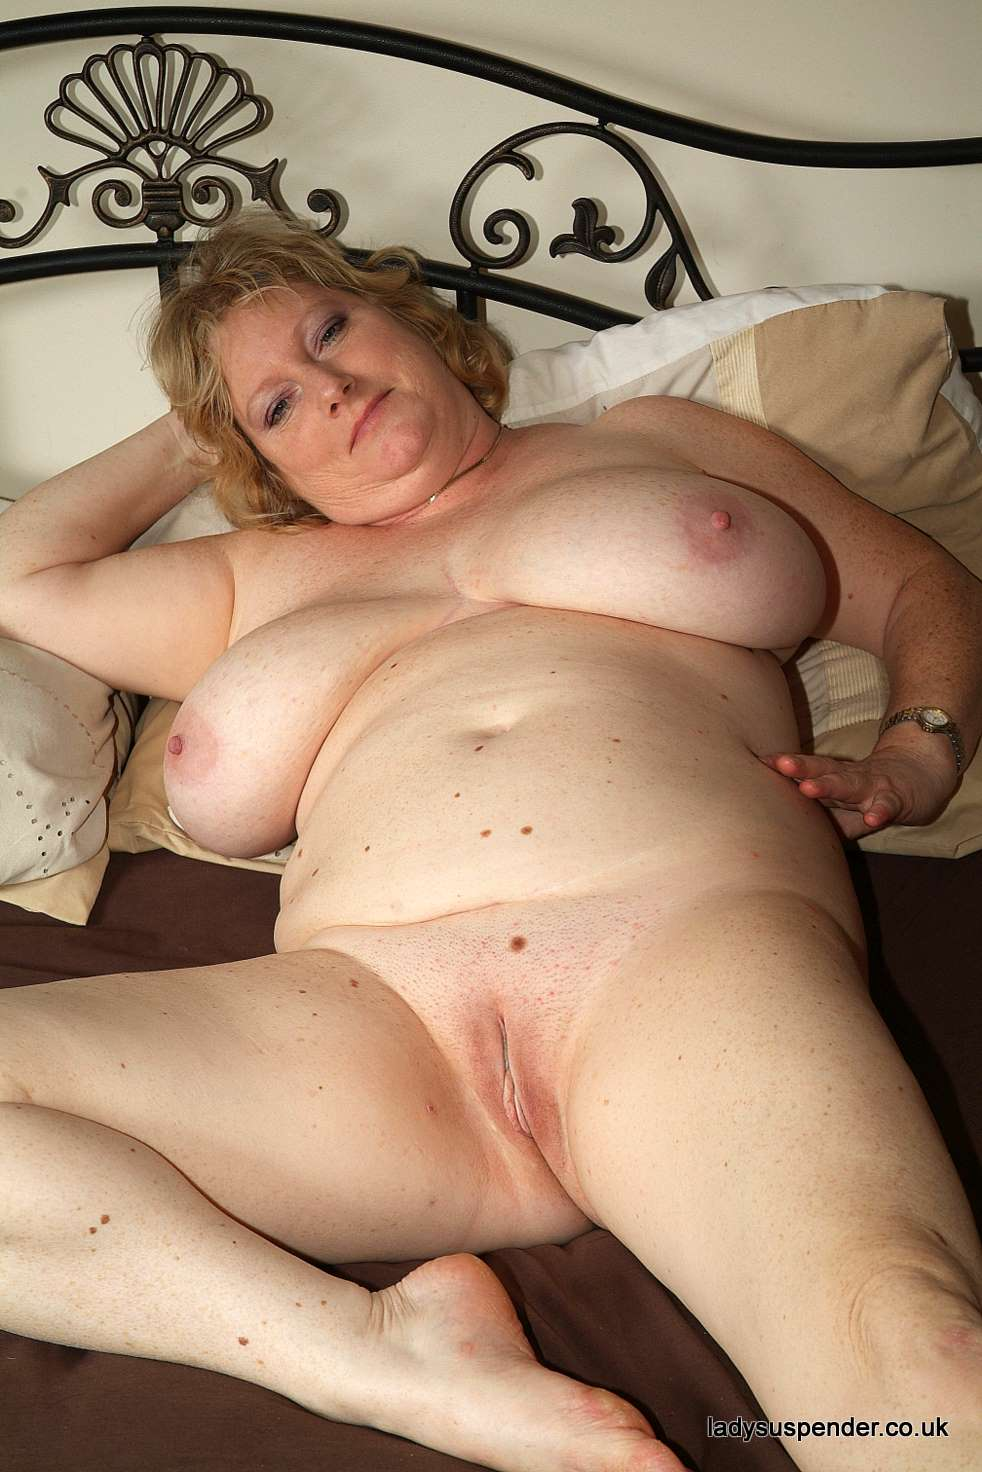 Archive Of Old Women Busty Mature Bbw Pics-2624